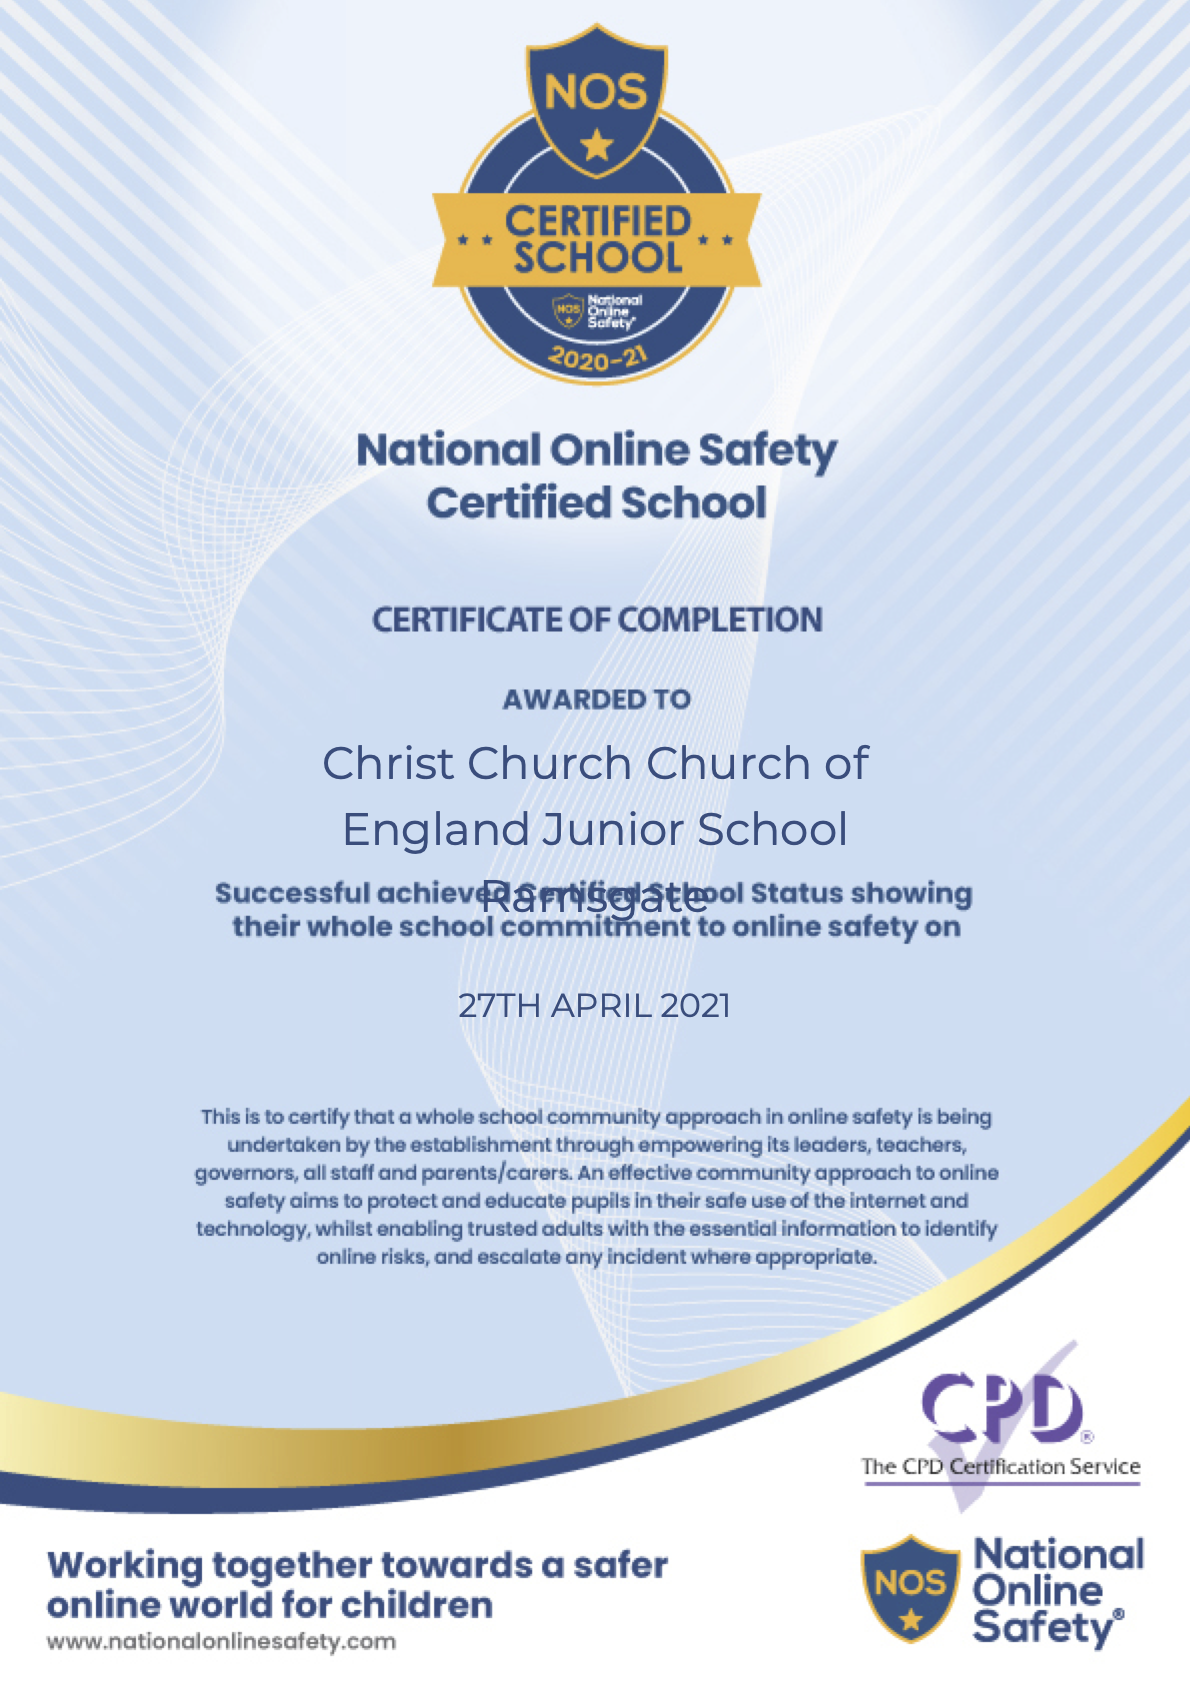 Christ Church CE Junior School is now a National Online Safety Certified School